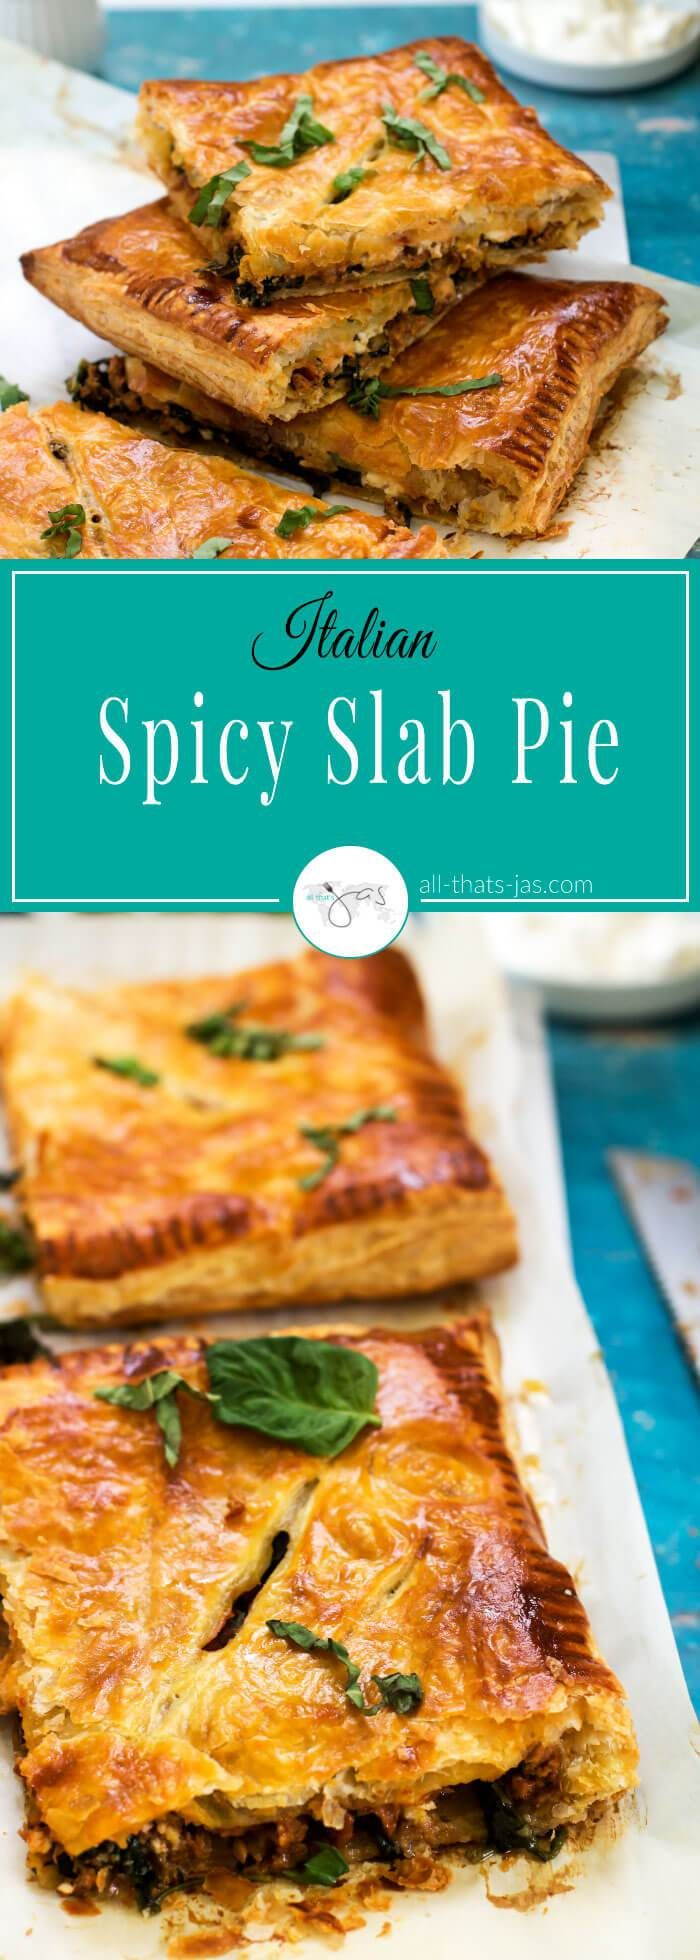 This spicy Italian slab pie recipe is simple and super easy to make with puff pastry filled with spicy Italian sausage, Ricotta cheese, fennel, spinach, and marinara sauce. | allthatsjas.com | #ItalianFood #pie #spicy, #pastry #puffpastry #dinner #quick, #Italian,